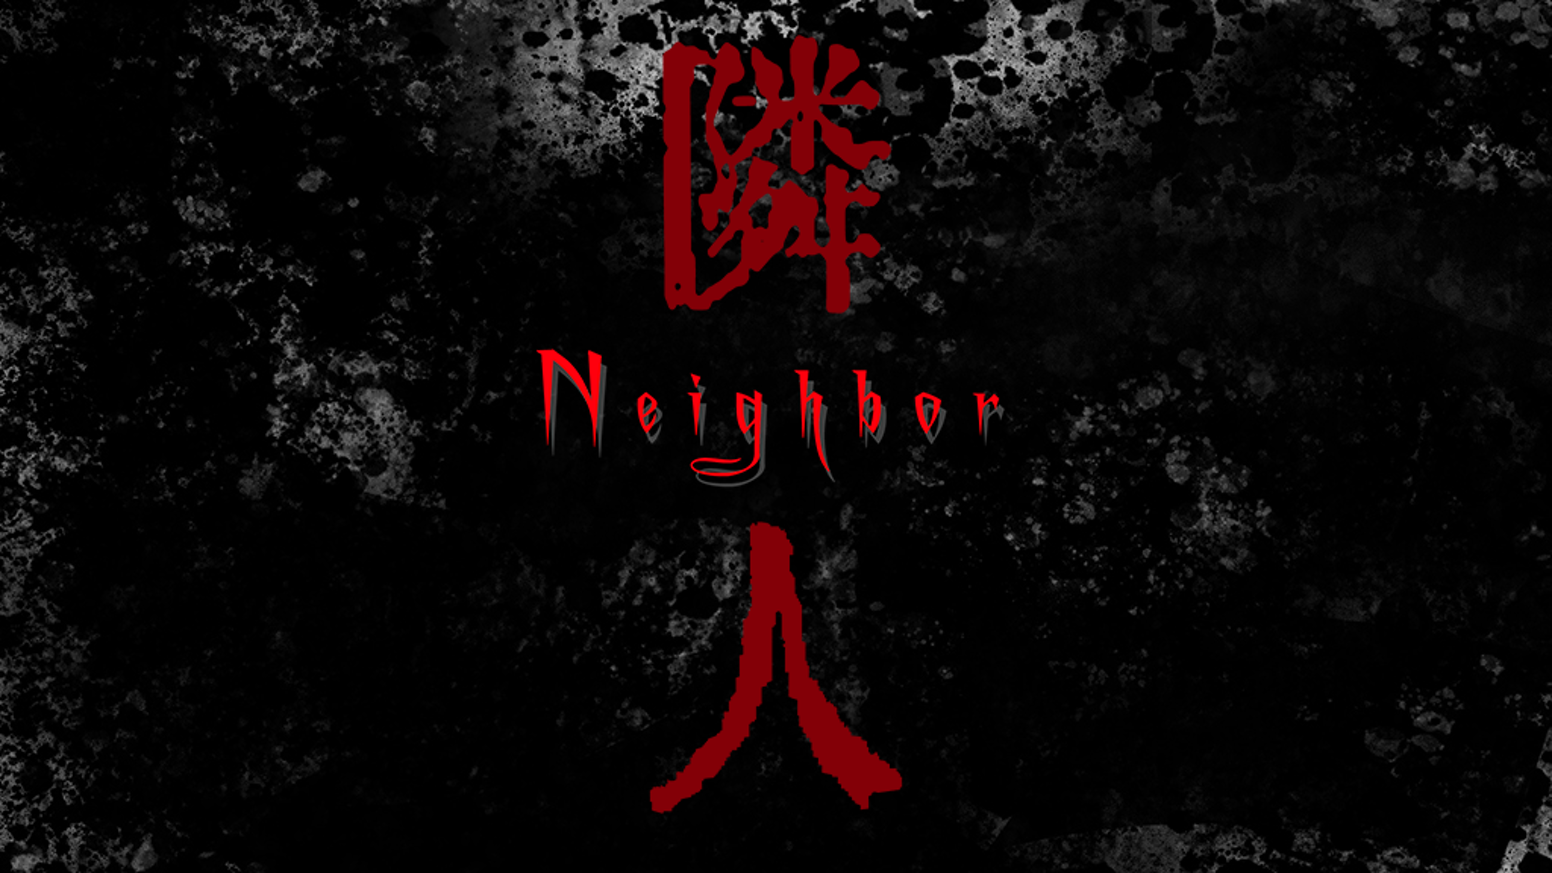 Bring Classic Horror Visual Novel ??-Neighbor- To The West! is the top crowdfunding project launched today. Bring Classic Horror Visual Novel ??-Neighbor- To The West! raised over $1288854 from 363 backers. Other top projects include Wado - Sustainable Sneakers Inspired By The 80s, Zangiah - Quality Hand-Made Mongolian Ties, KicoBox- A Robot like Rubik's Cube to Teach Coding...